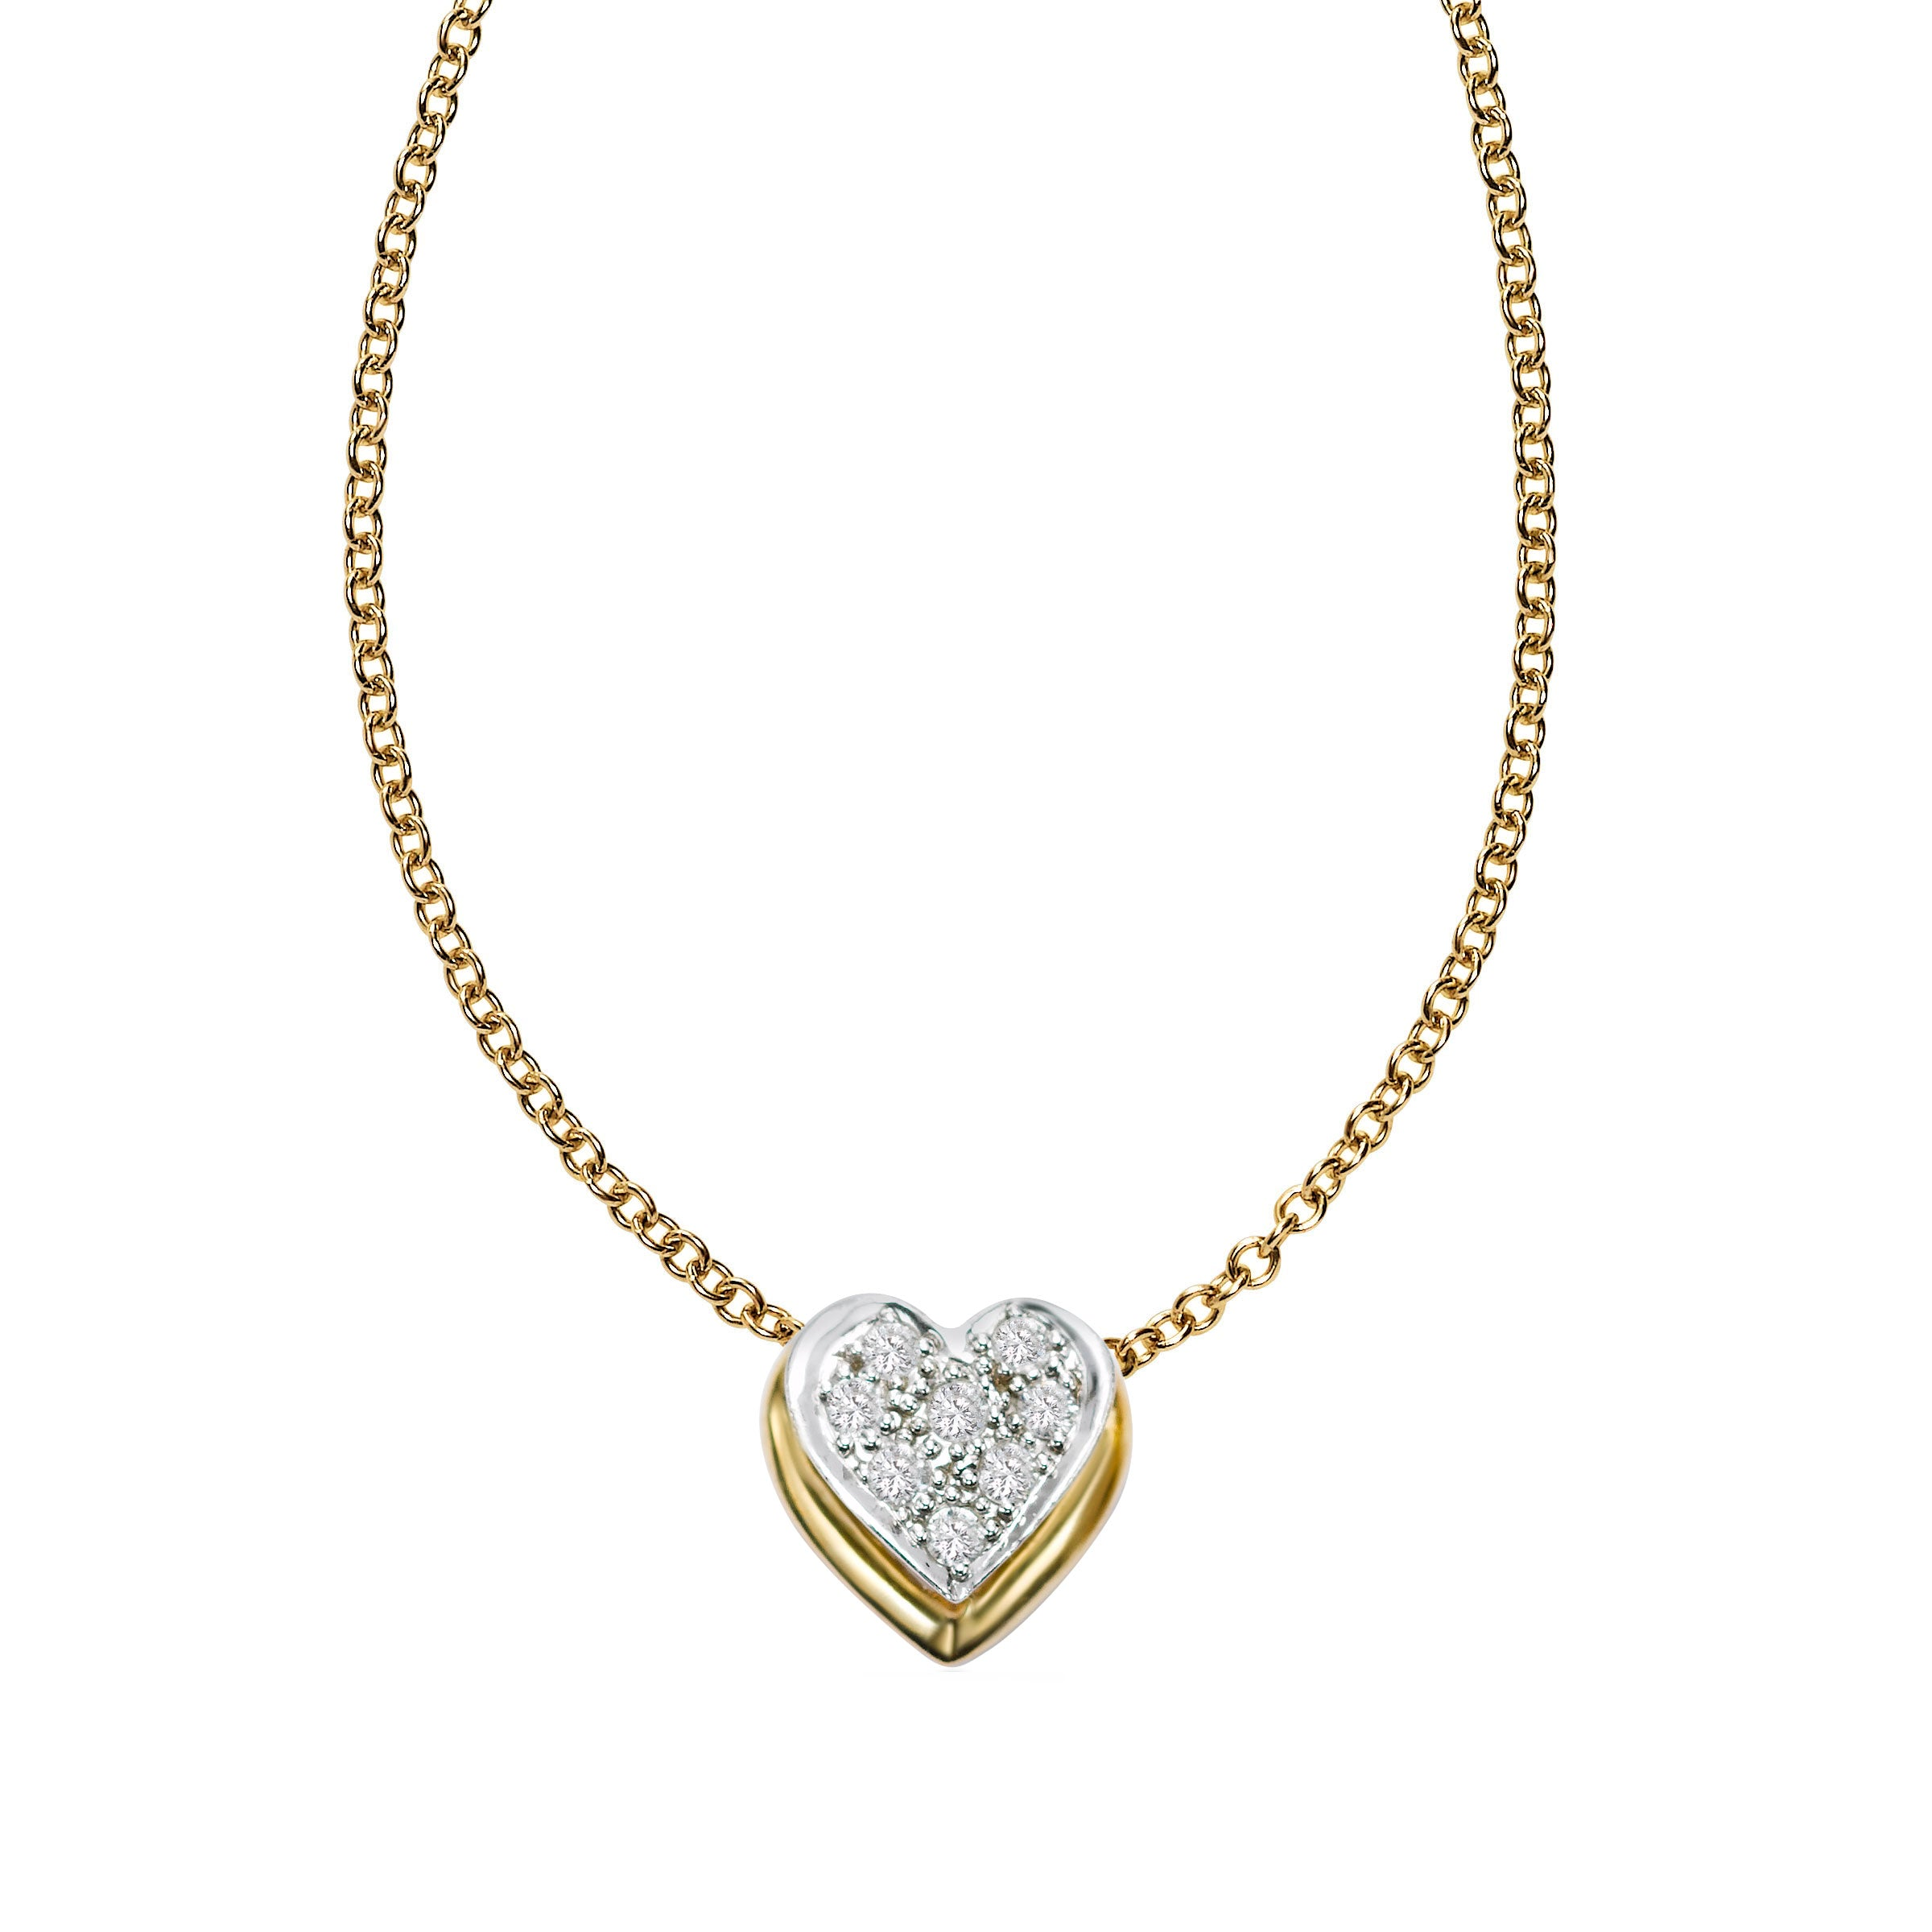 Pavé Diamond Floating Heart Pendant, 14 Karat Gold